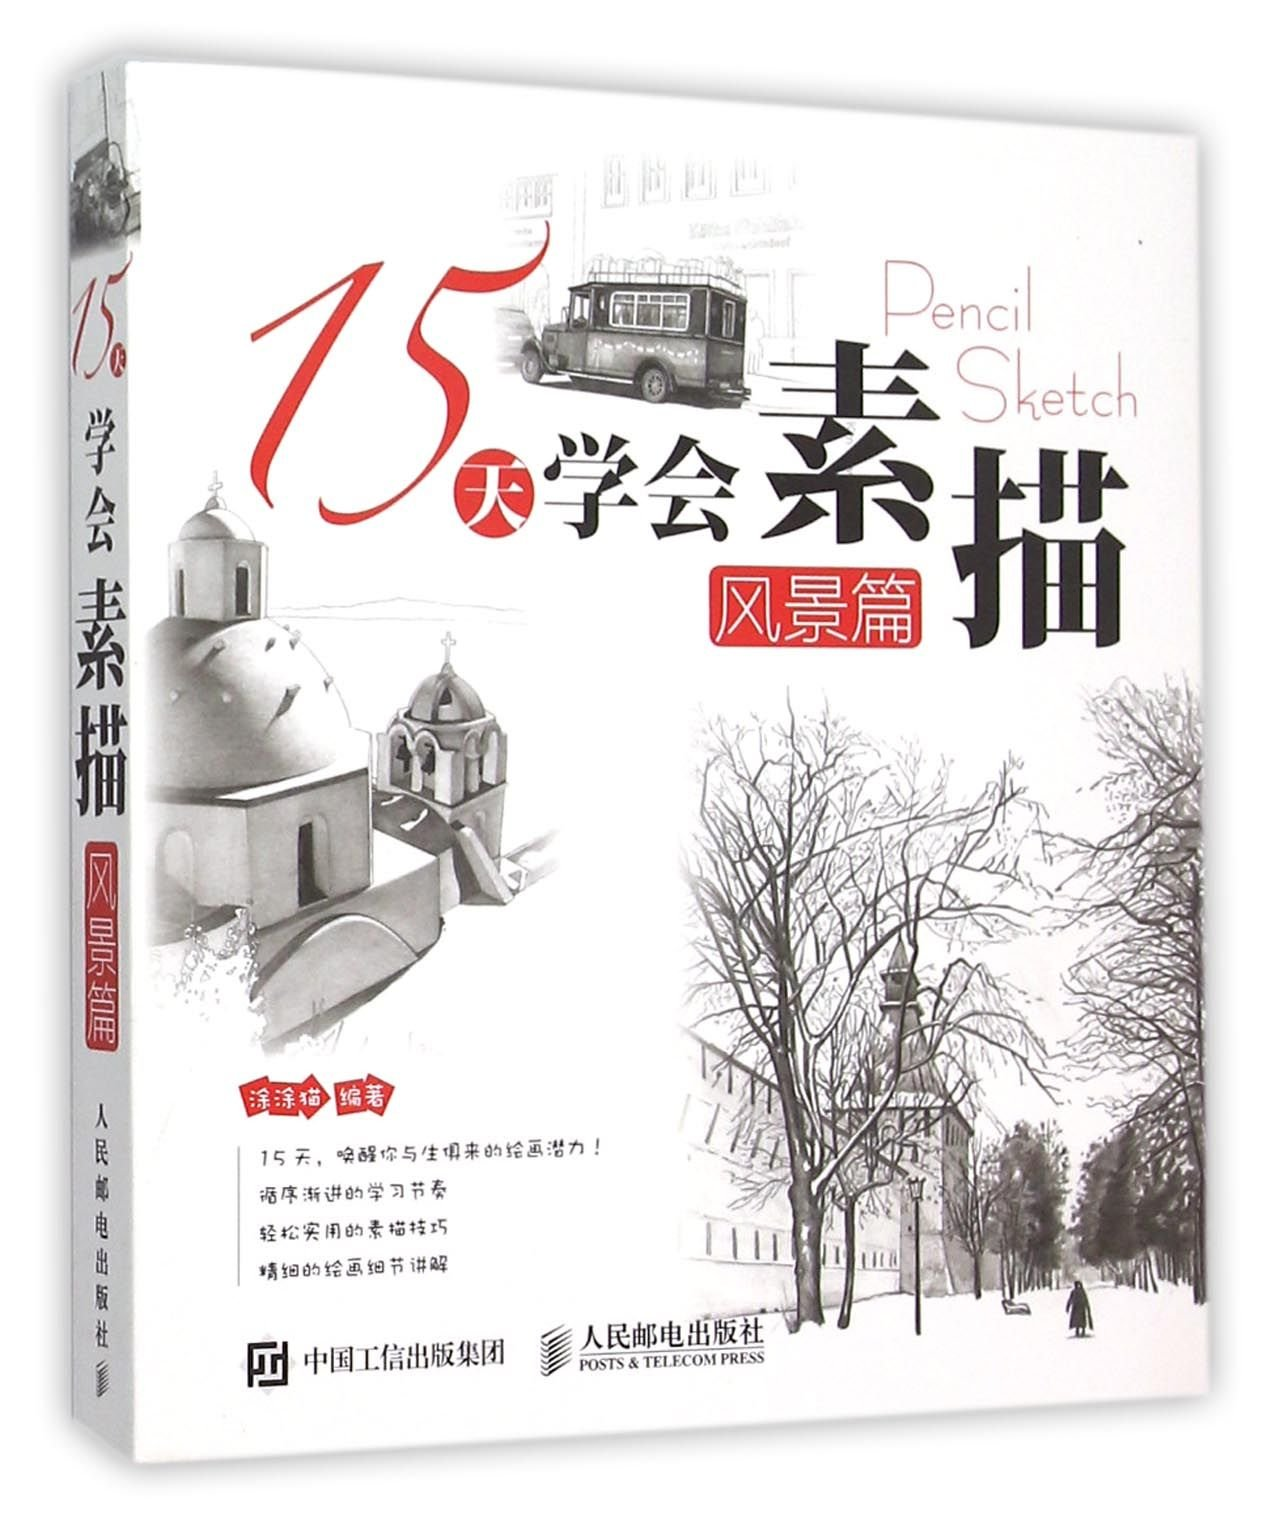 Download Pencil Sketch in 15 Days (Scenes) (Chinese Edition) pdf